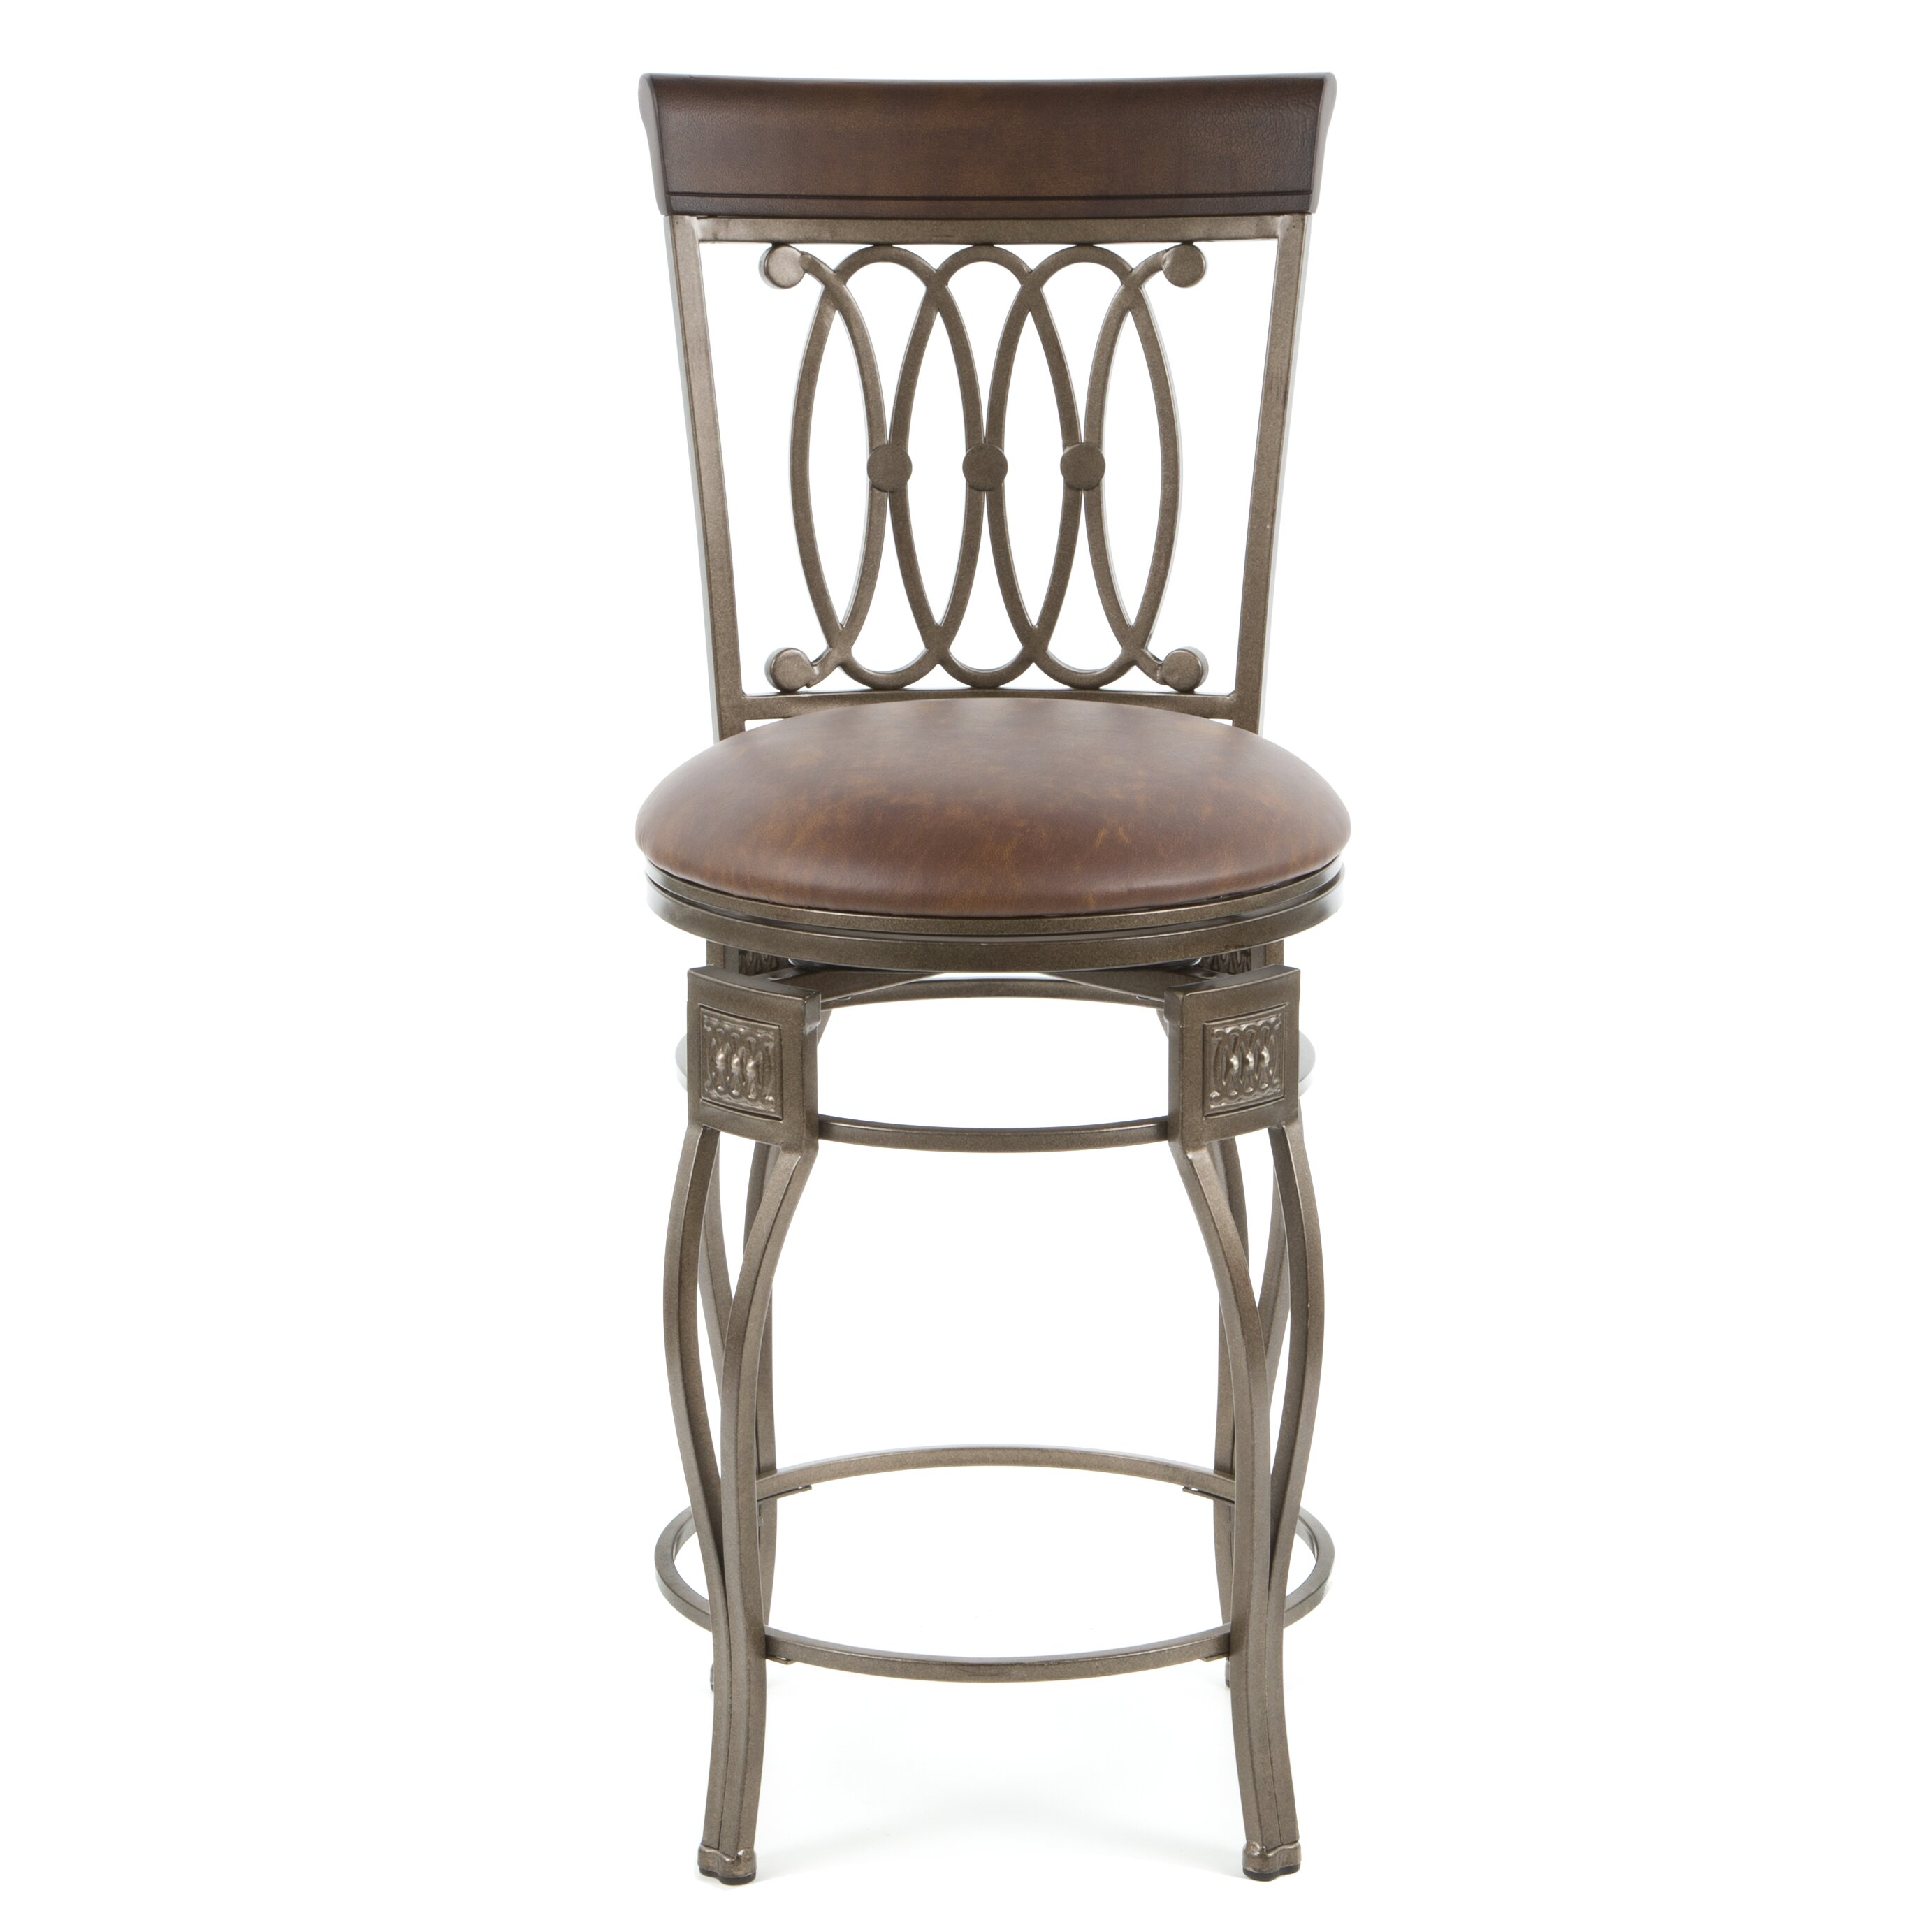 Hillsdale Easy Assembly Montello 24quot Swivel Bar Stool  : Easy2BAssembly2BMontello2B2425222BSwivel2BCounter2BStool from www.wayfair.com size 2765 x 2765 jpeg 312kB